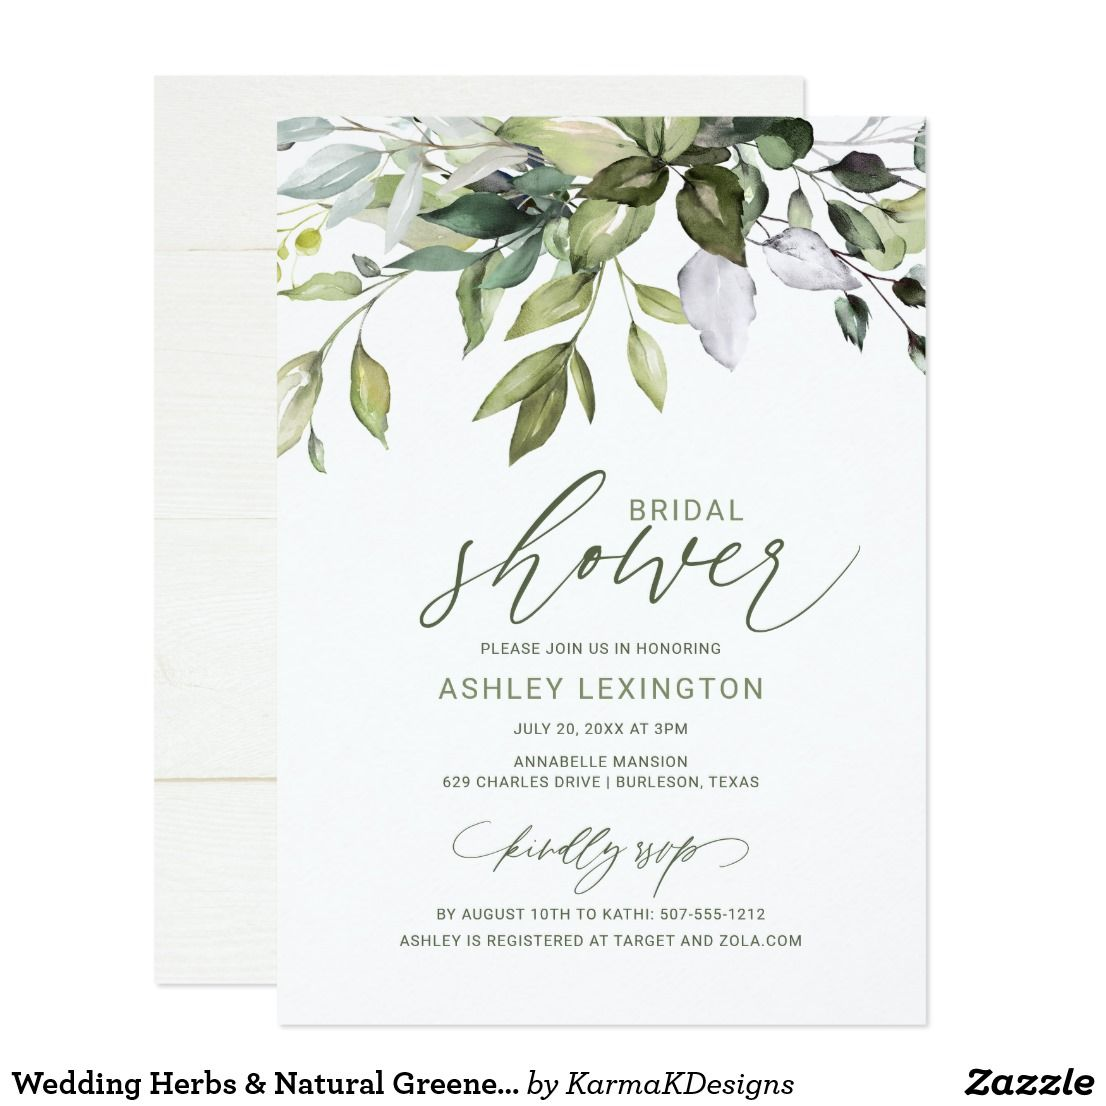 Eucalyptus Save the Date Nature Engagement Announcement Herbal Save-the-Date Card Greenery Wedding Announcement Botanical Save our Date